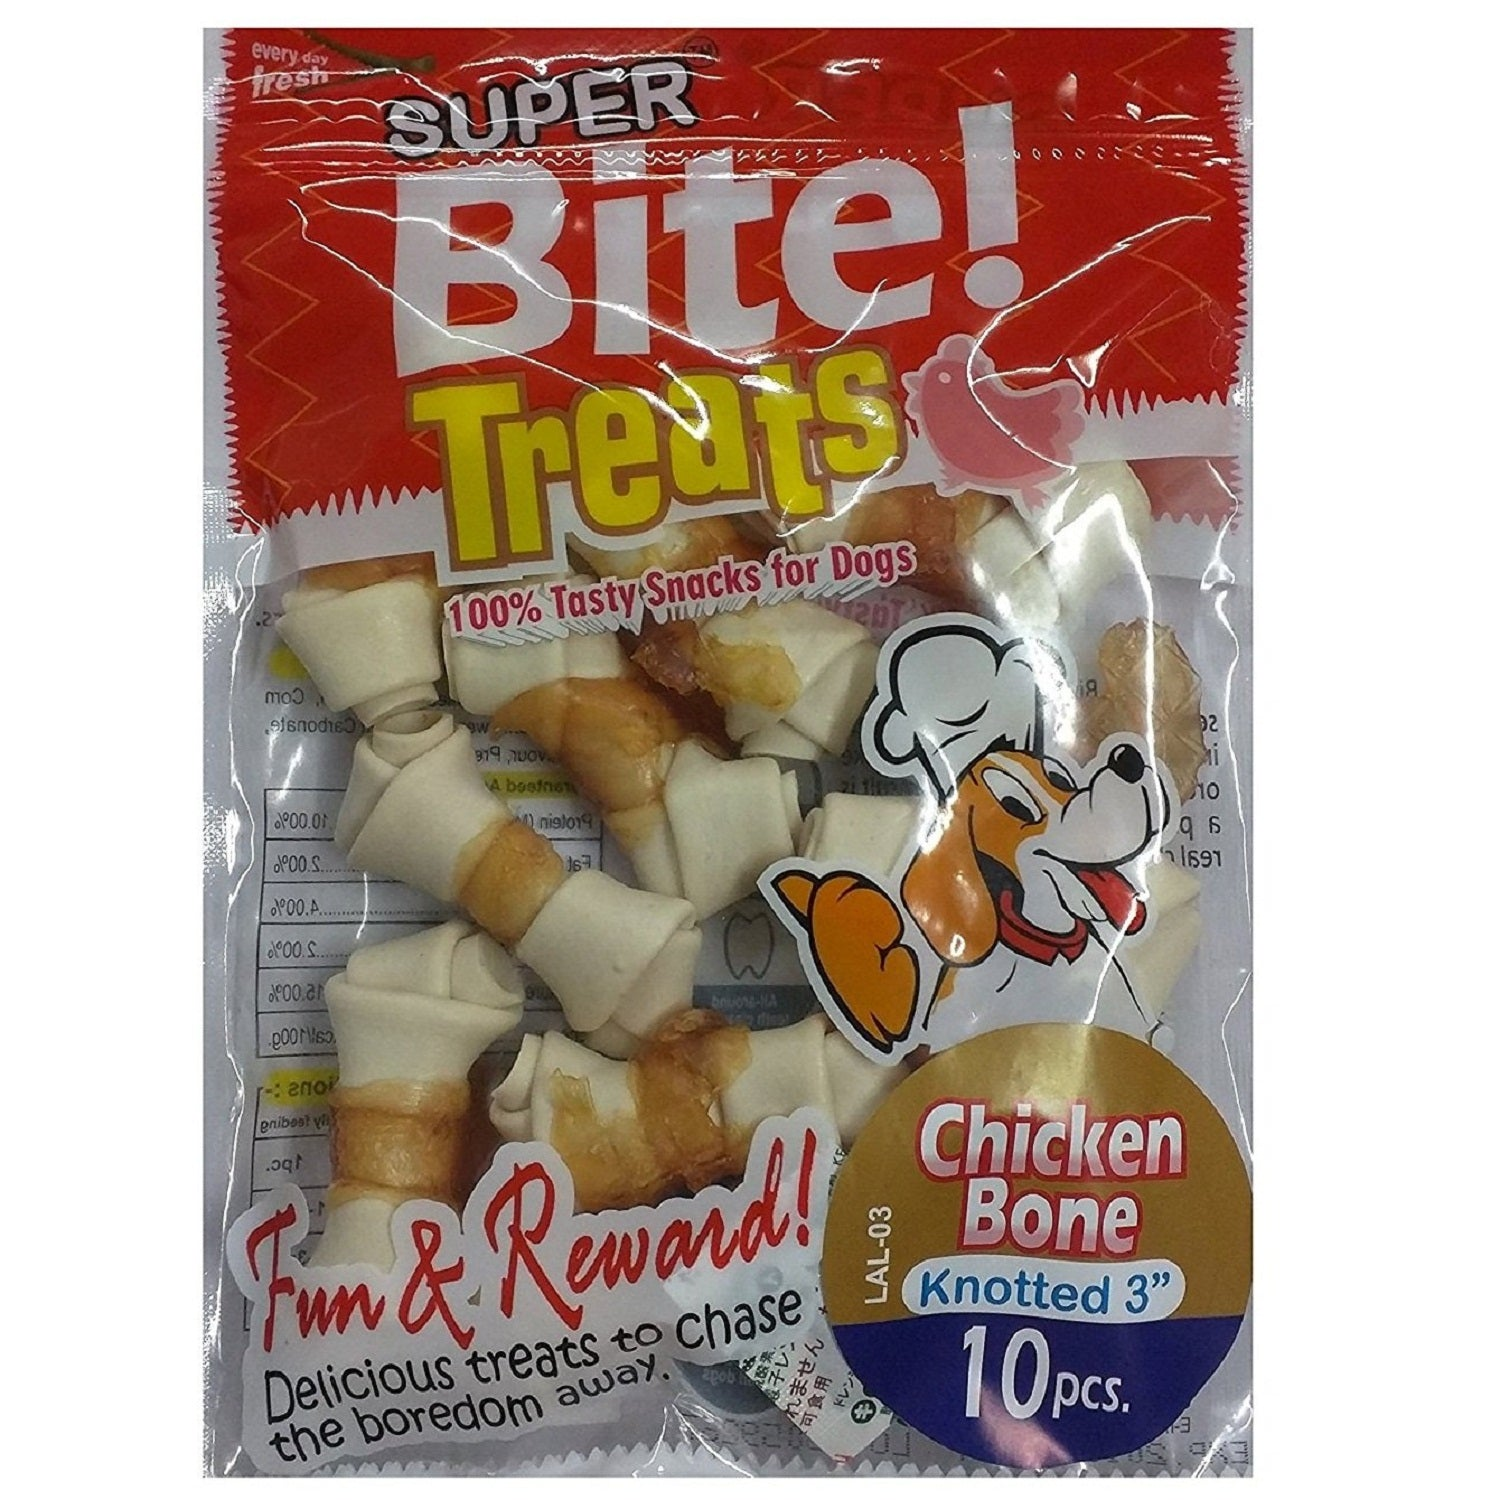 Super Bite Knotted Chicken Bone 3 Inch Dog Treat 10 pcs - pet-club-india